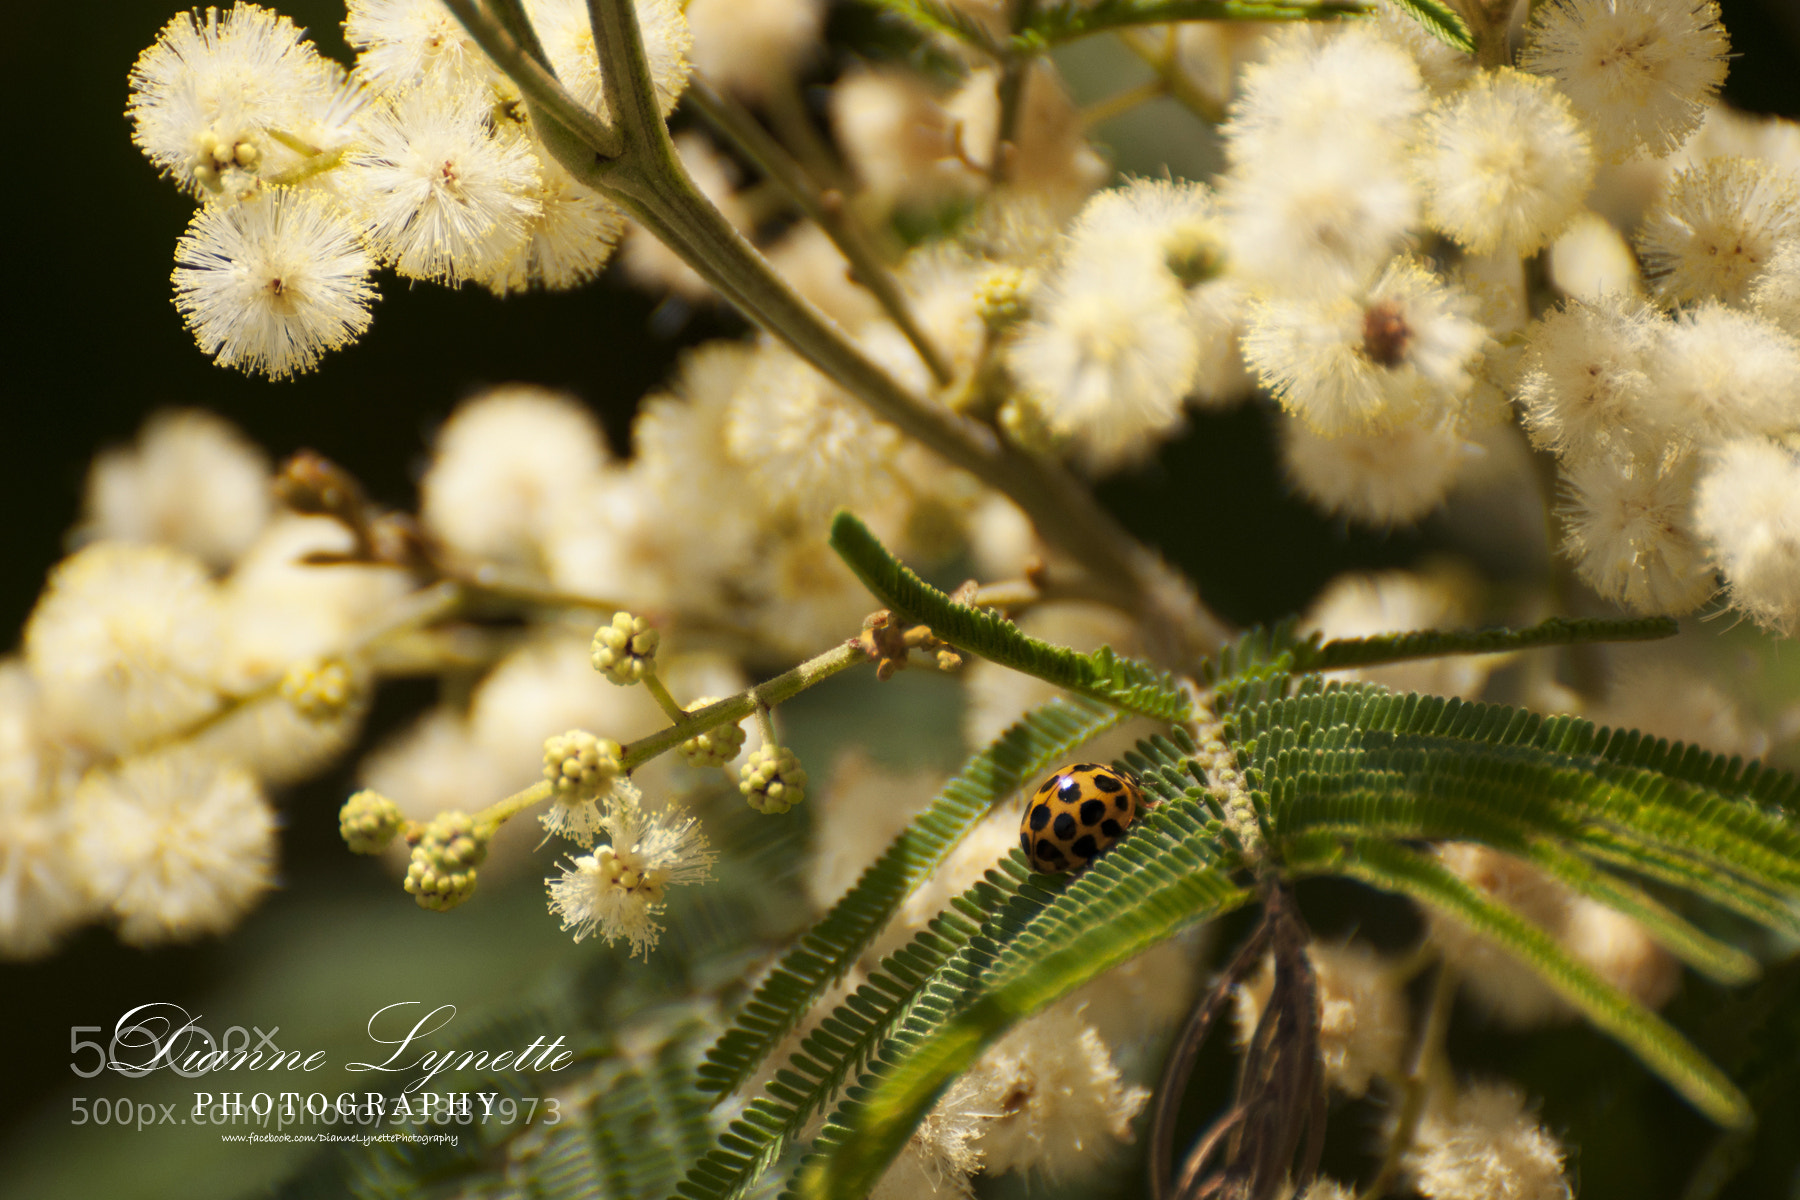 Photograph Ladybug by Dianne Lynette on 500px